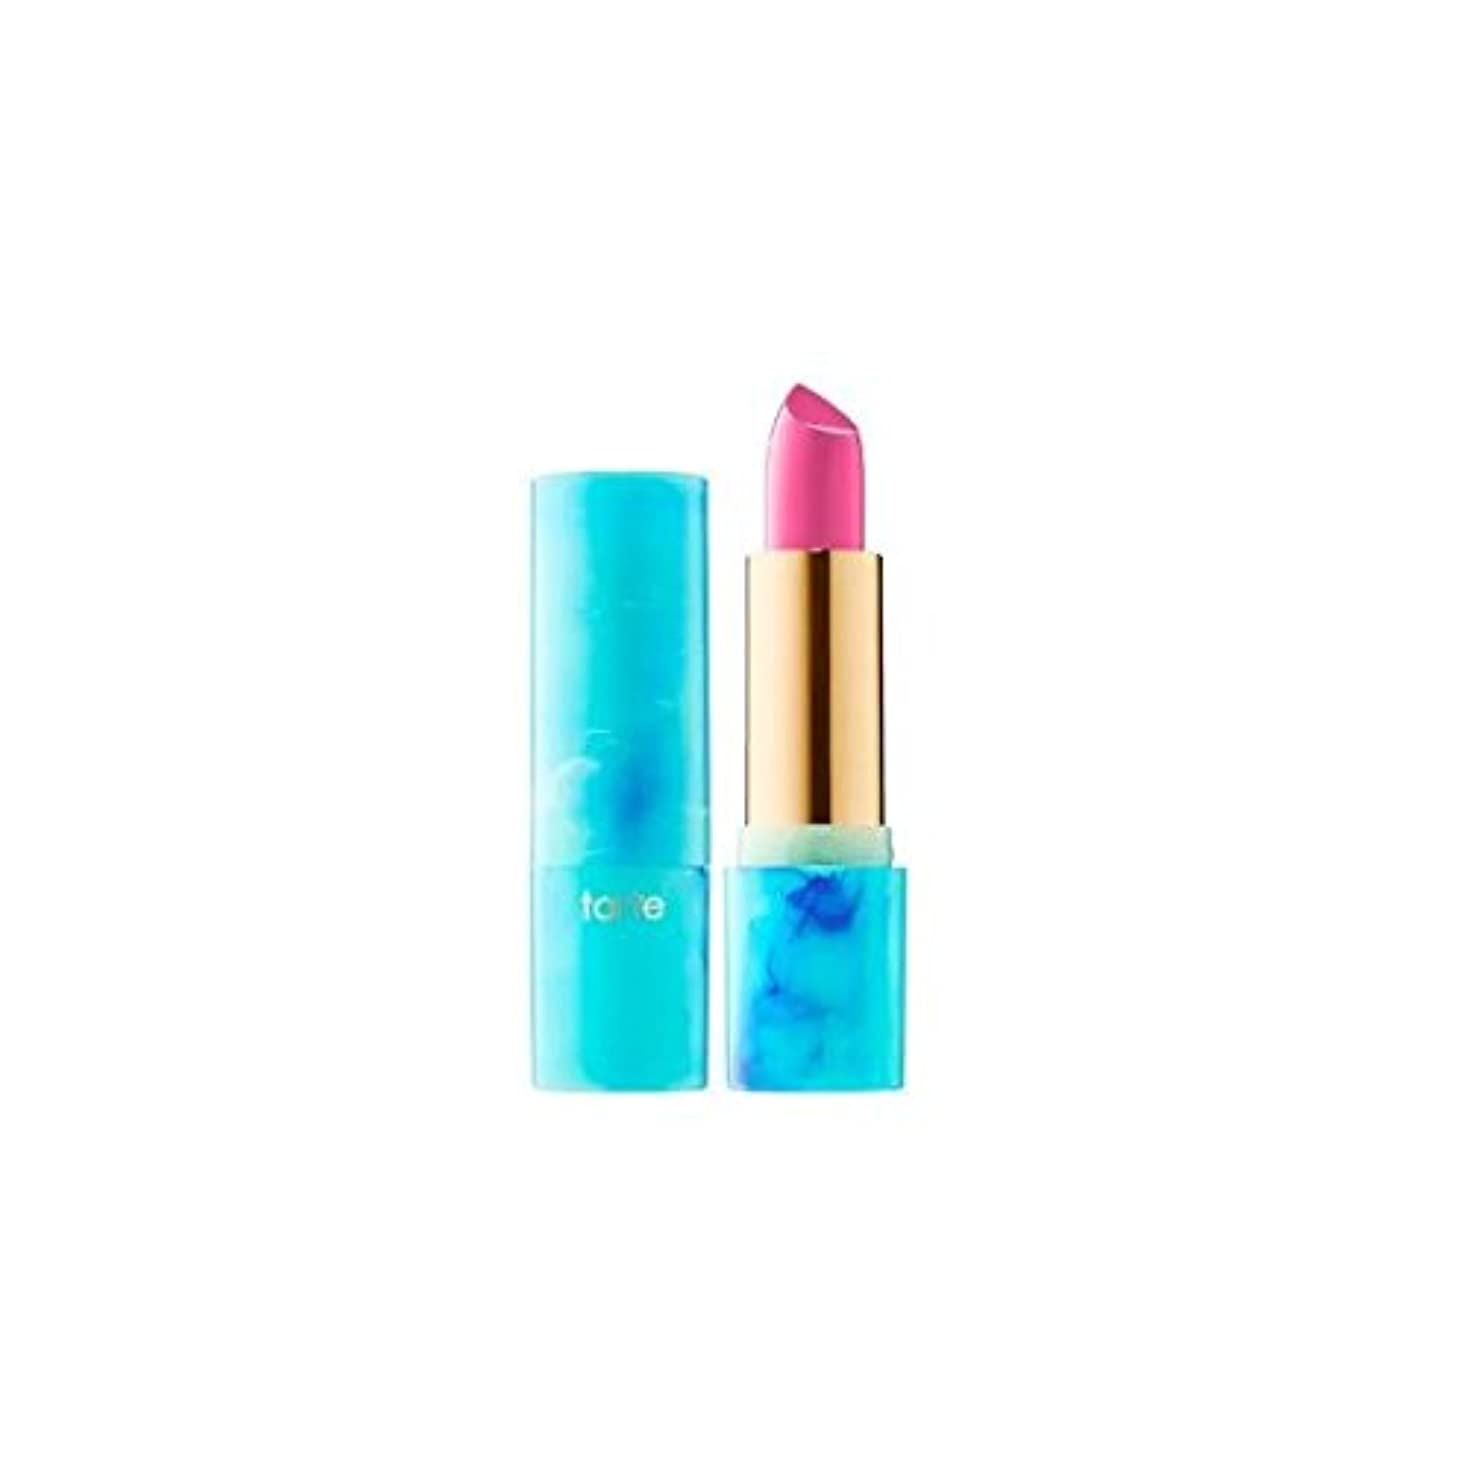 発行仮装散らすtarteタルト リップ Color Splash Lipstick - Rainforest of the Sea Collection Satin finish